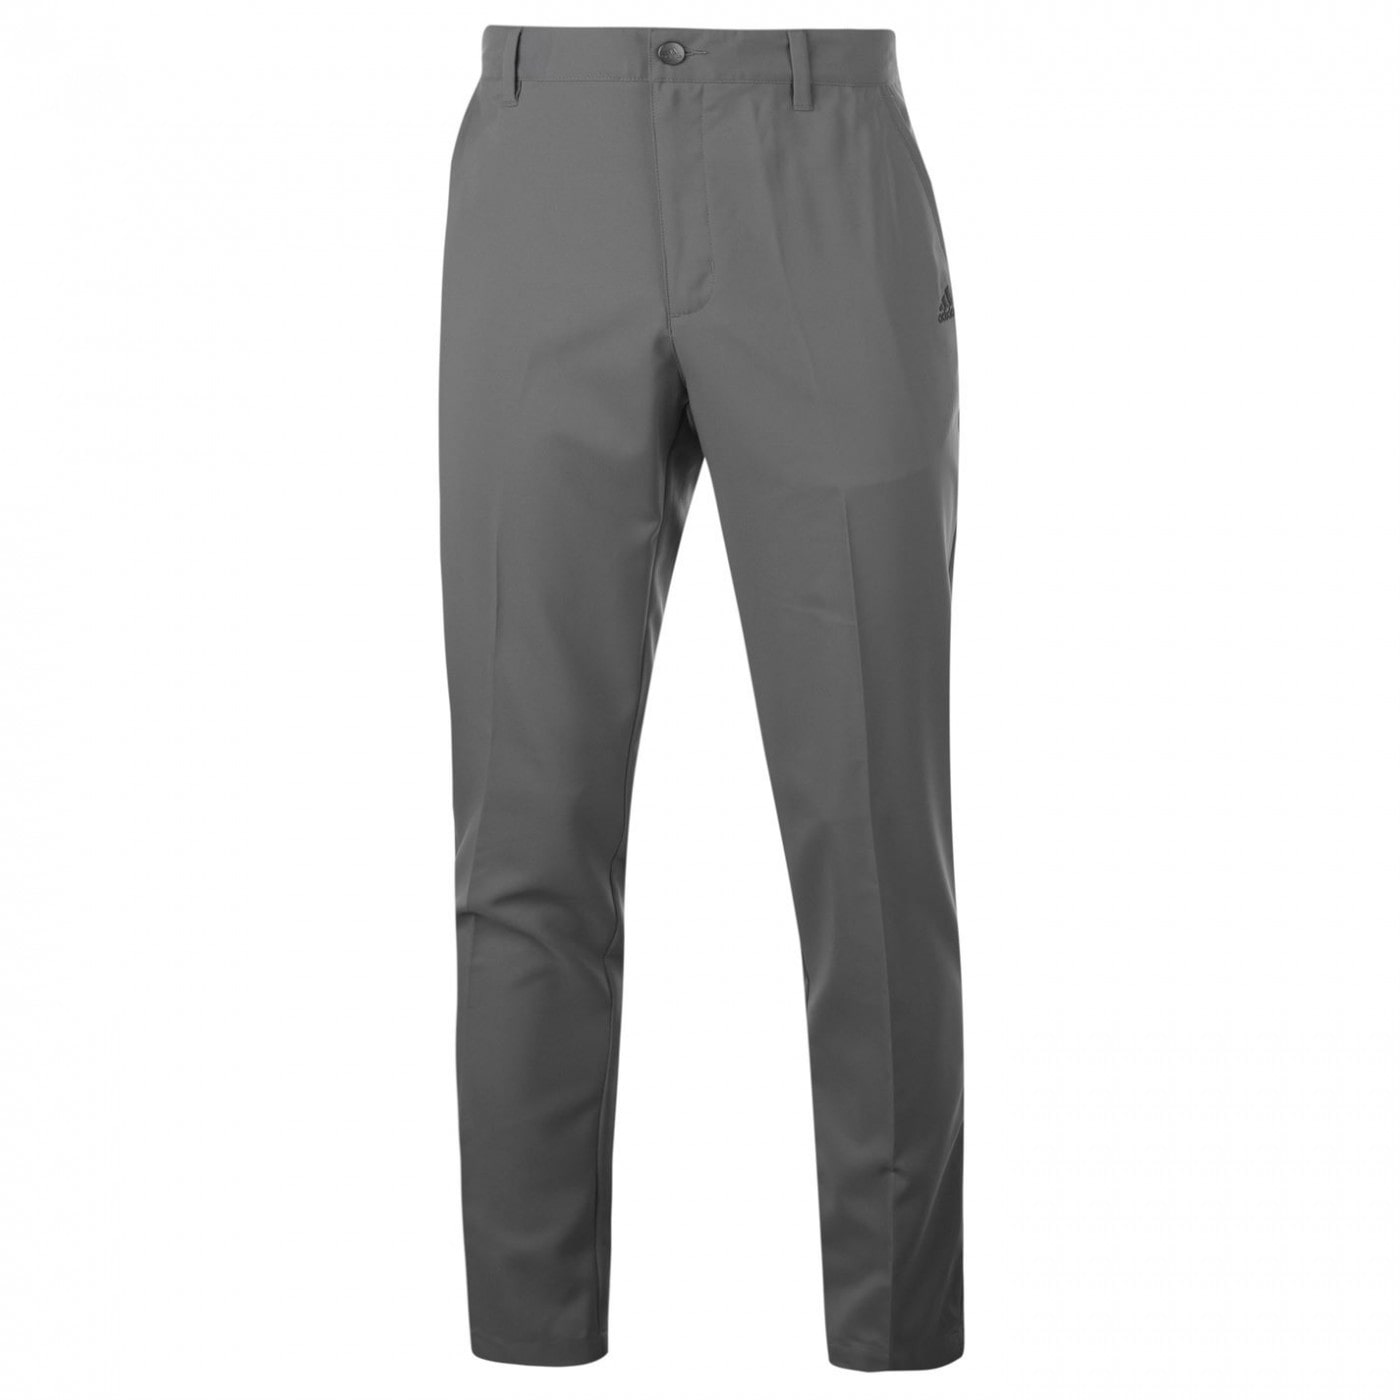 Adidas Tech Golf Pants Mens